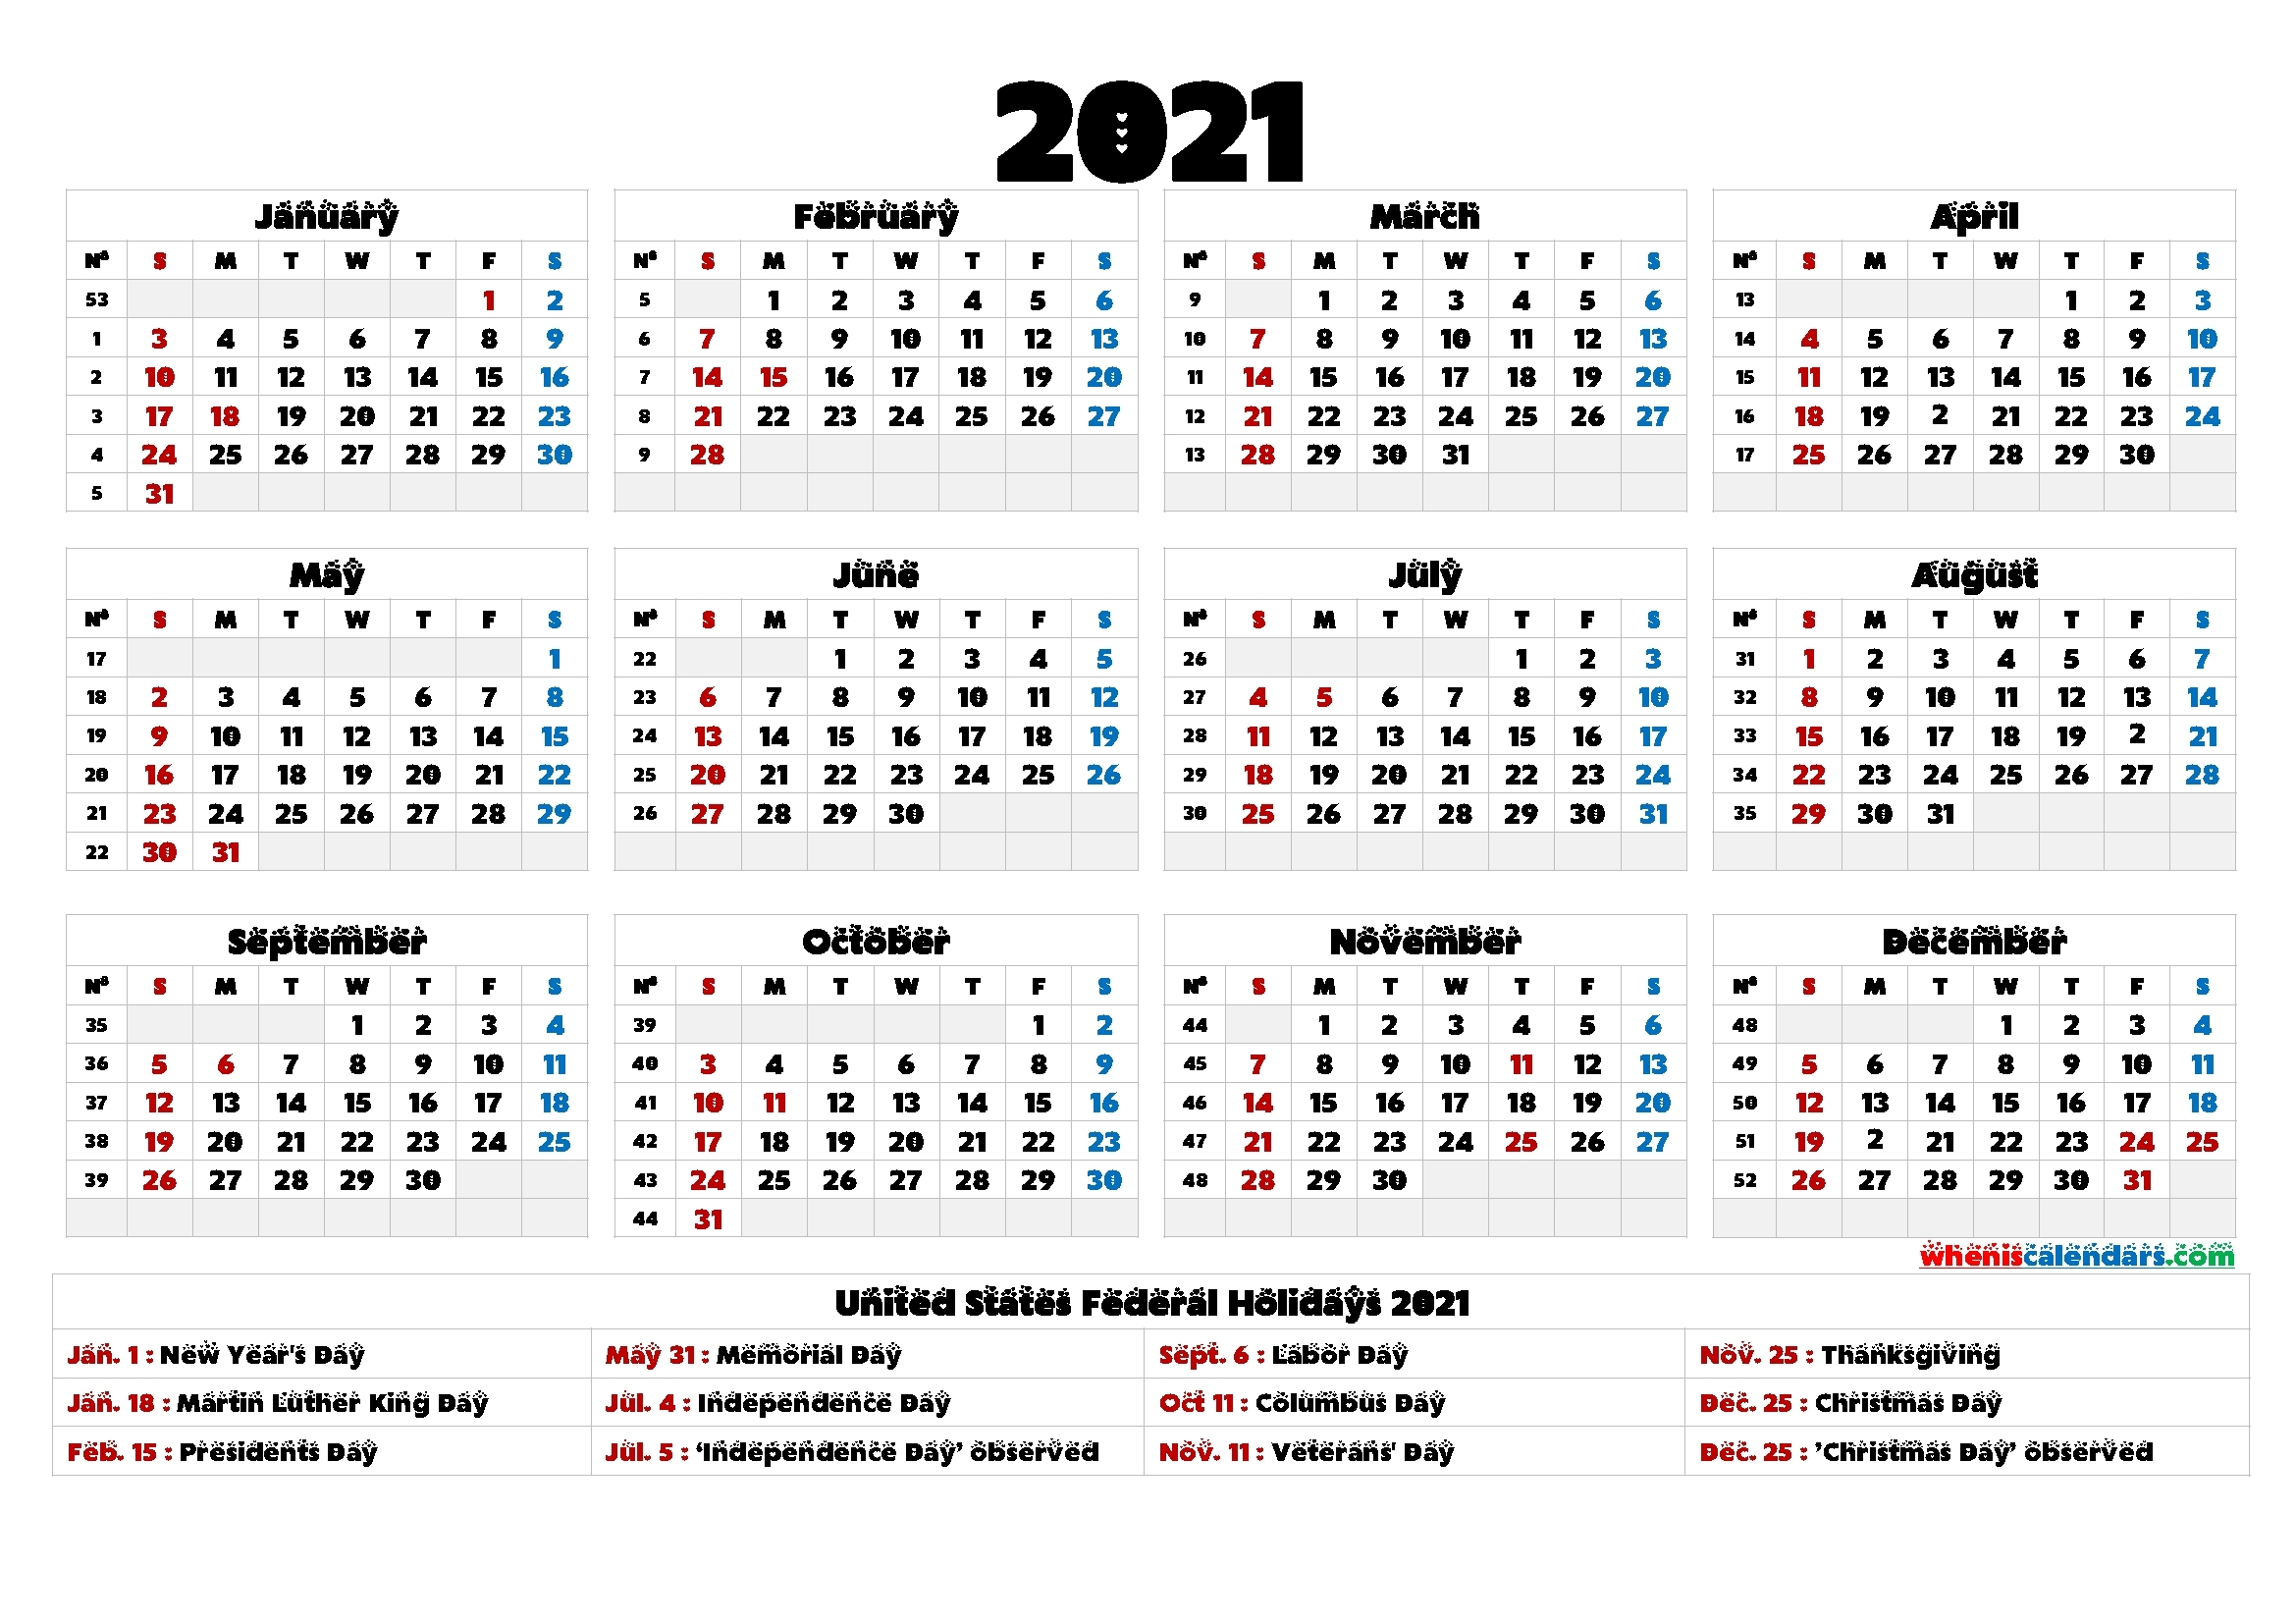 4Mmonth Calendar On One Page 2021 - Example Calendar Printable intended for Free Printable Calendars 2021 Monthly